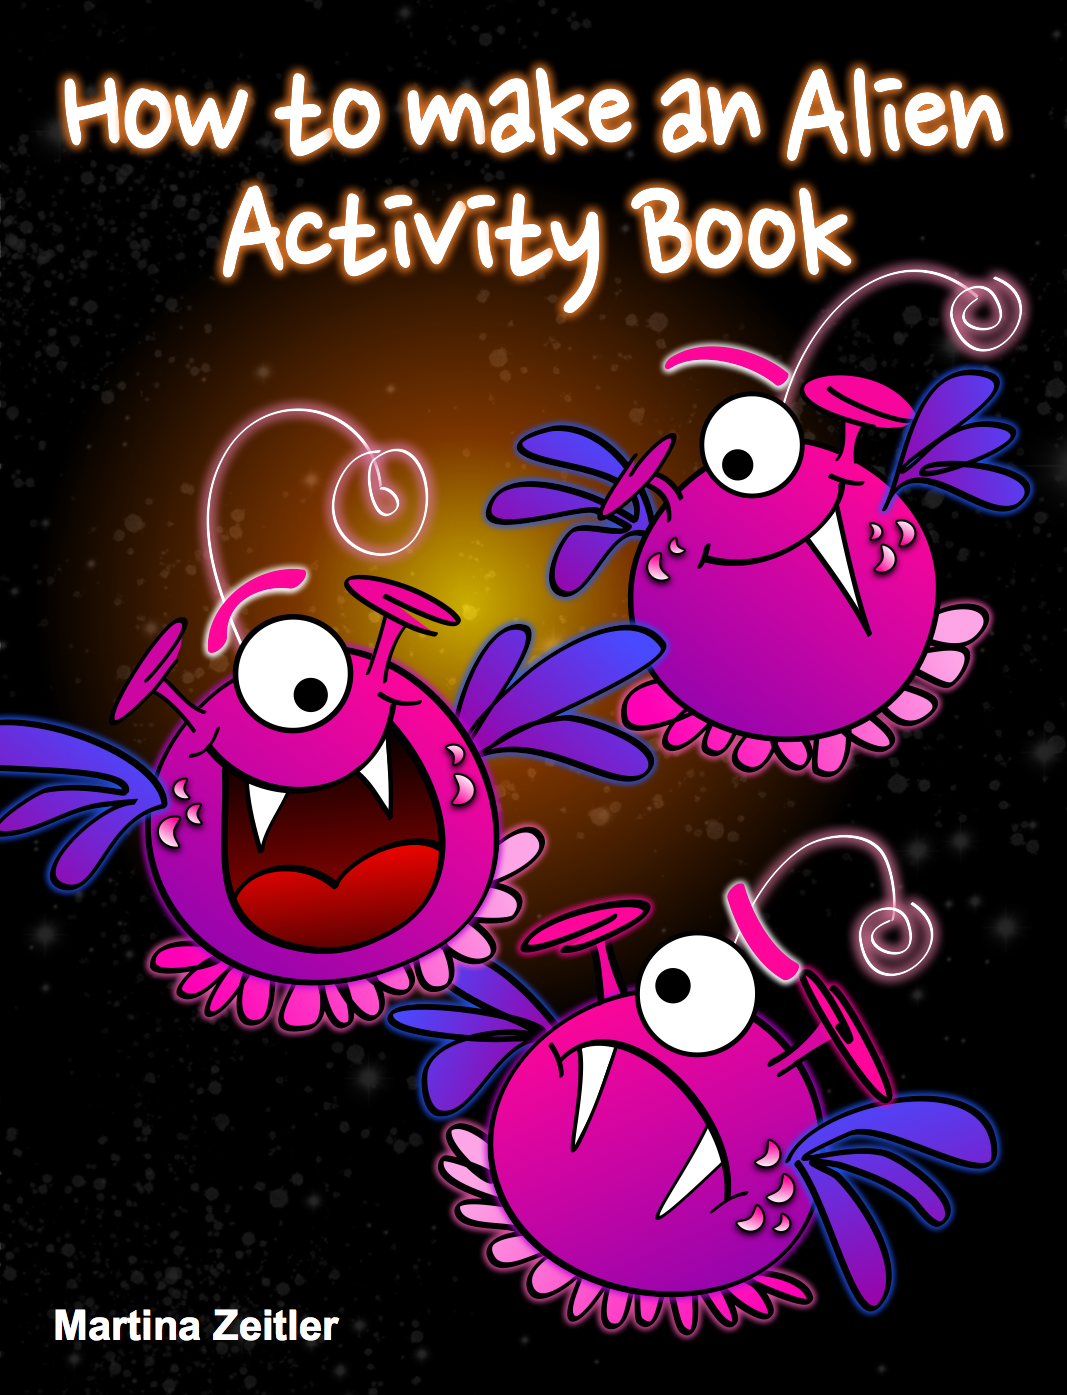 Free multi-touch activity book on aliens for iPad